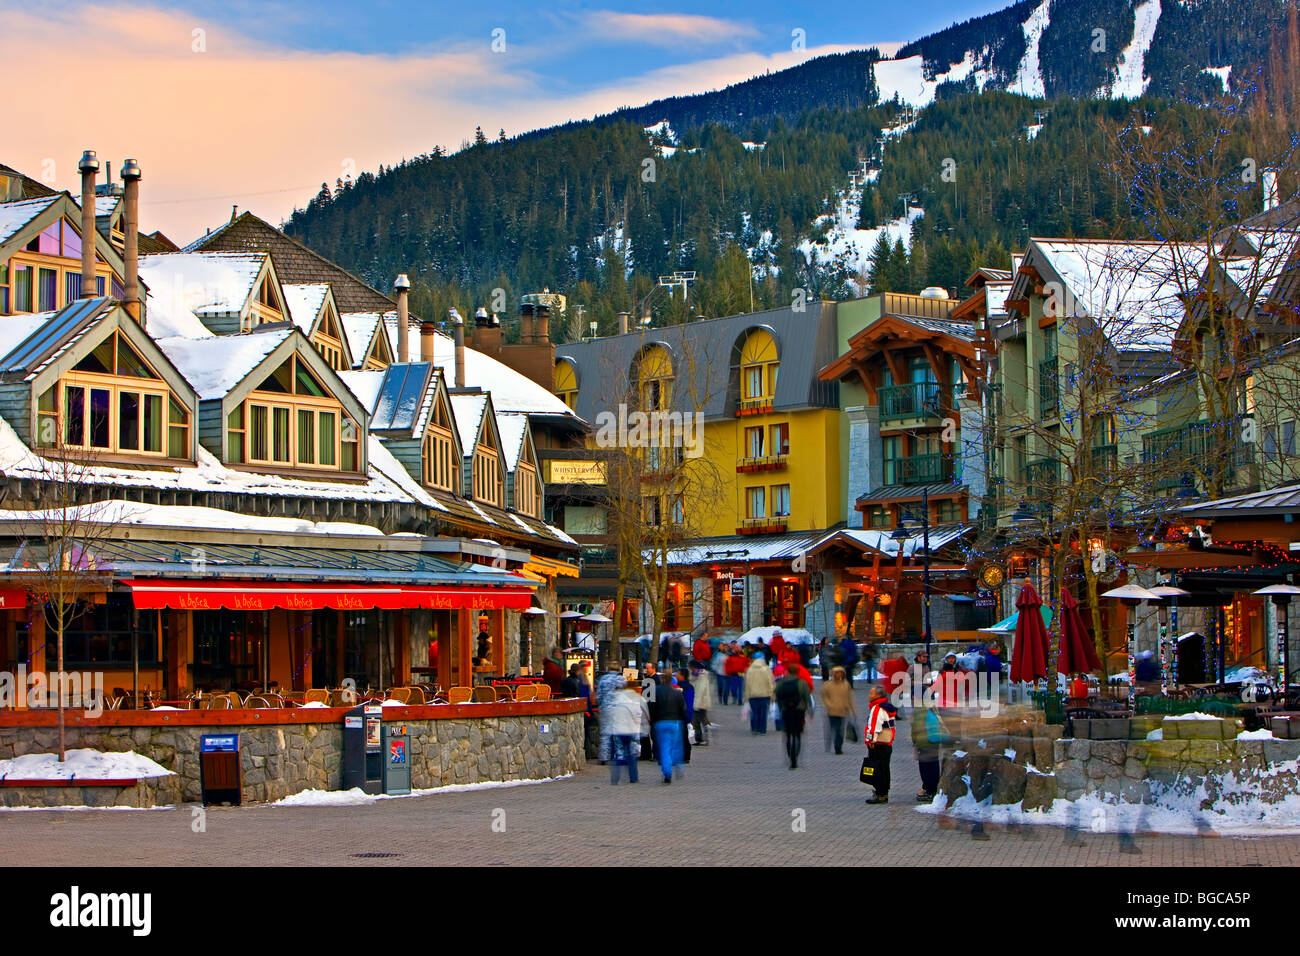 Pedestrian activity and shops along along the Village Stroll in Whistler Village, British Columbia, Canada. - Stock Image